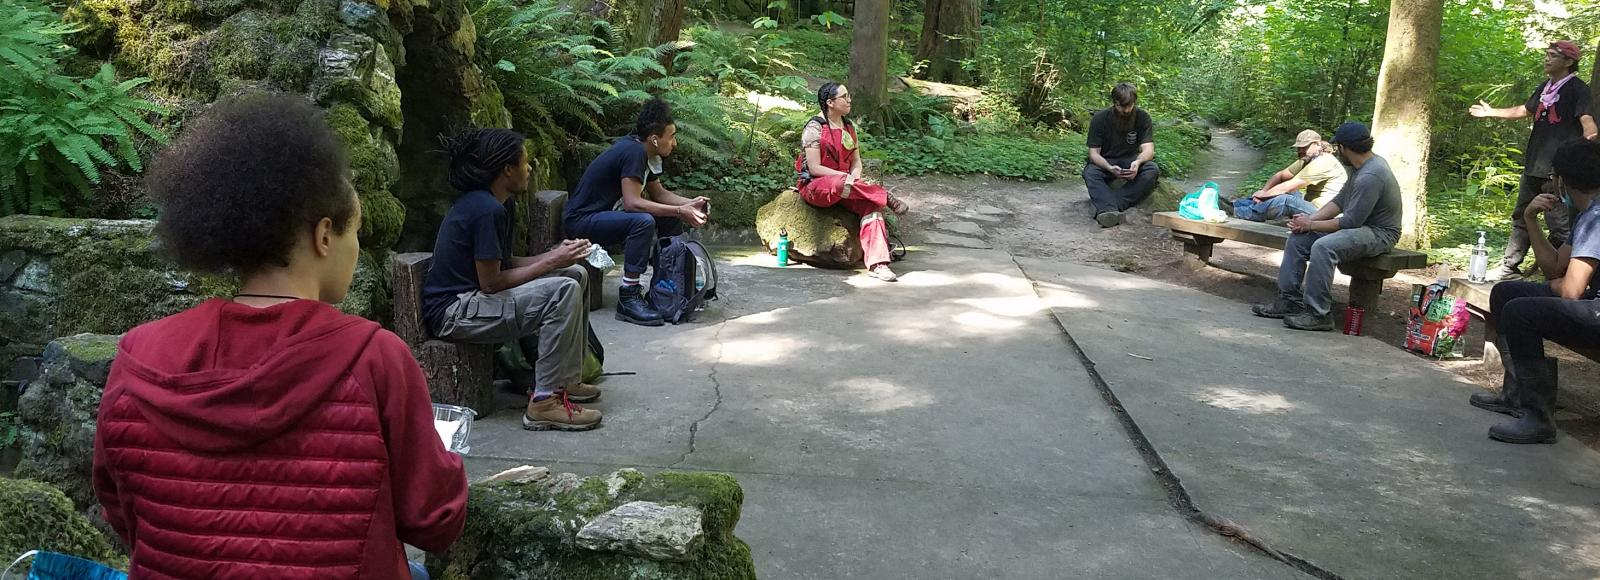 Young adults sit six feet apart. They are looking at a man standing and speaking. They are surrounded by ferns, trees, and dappled sunshine.